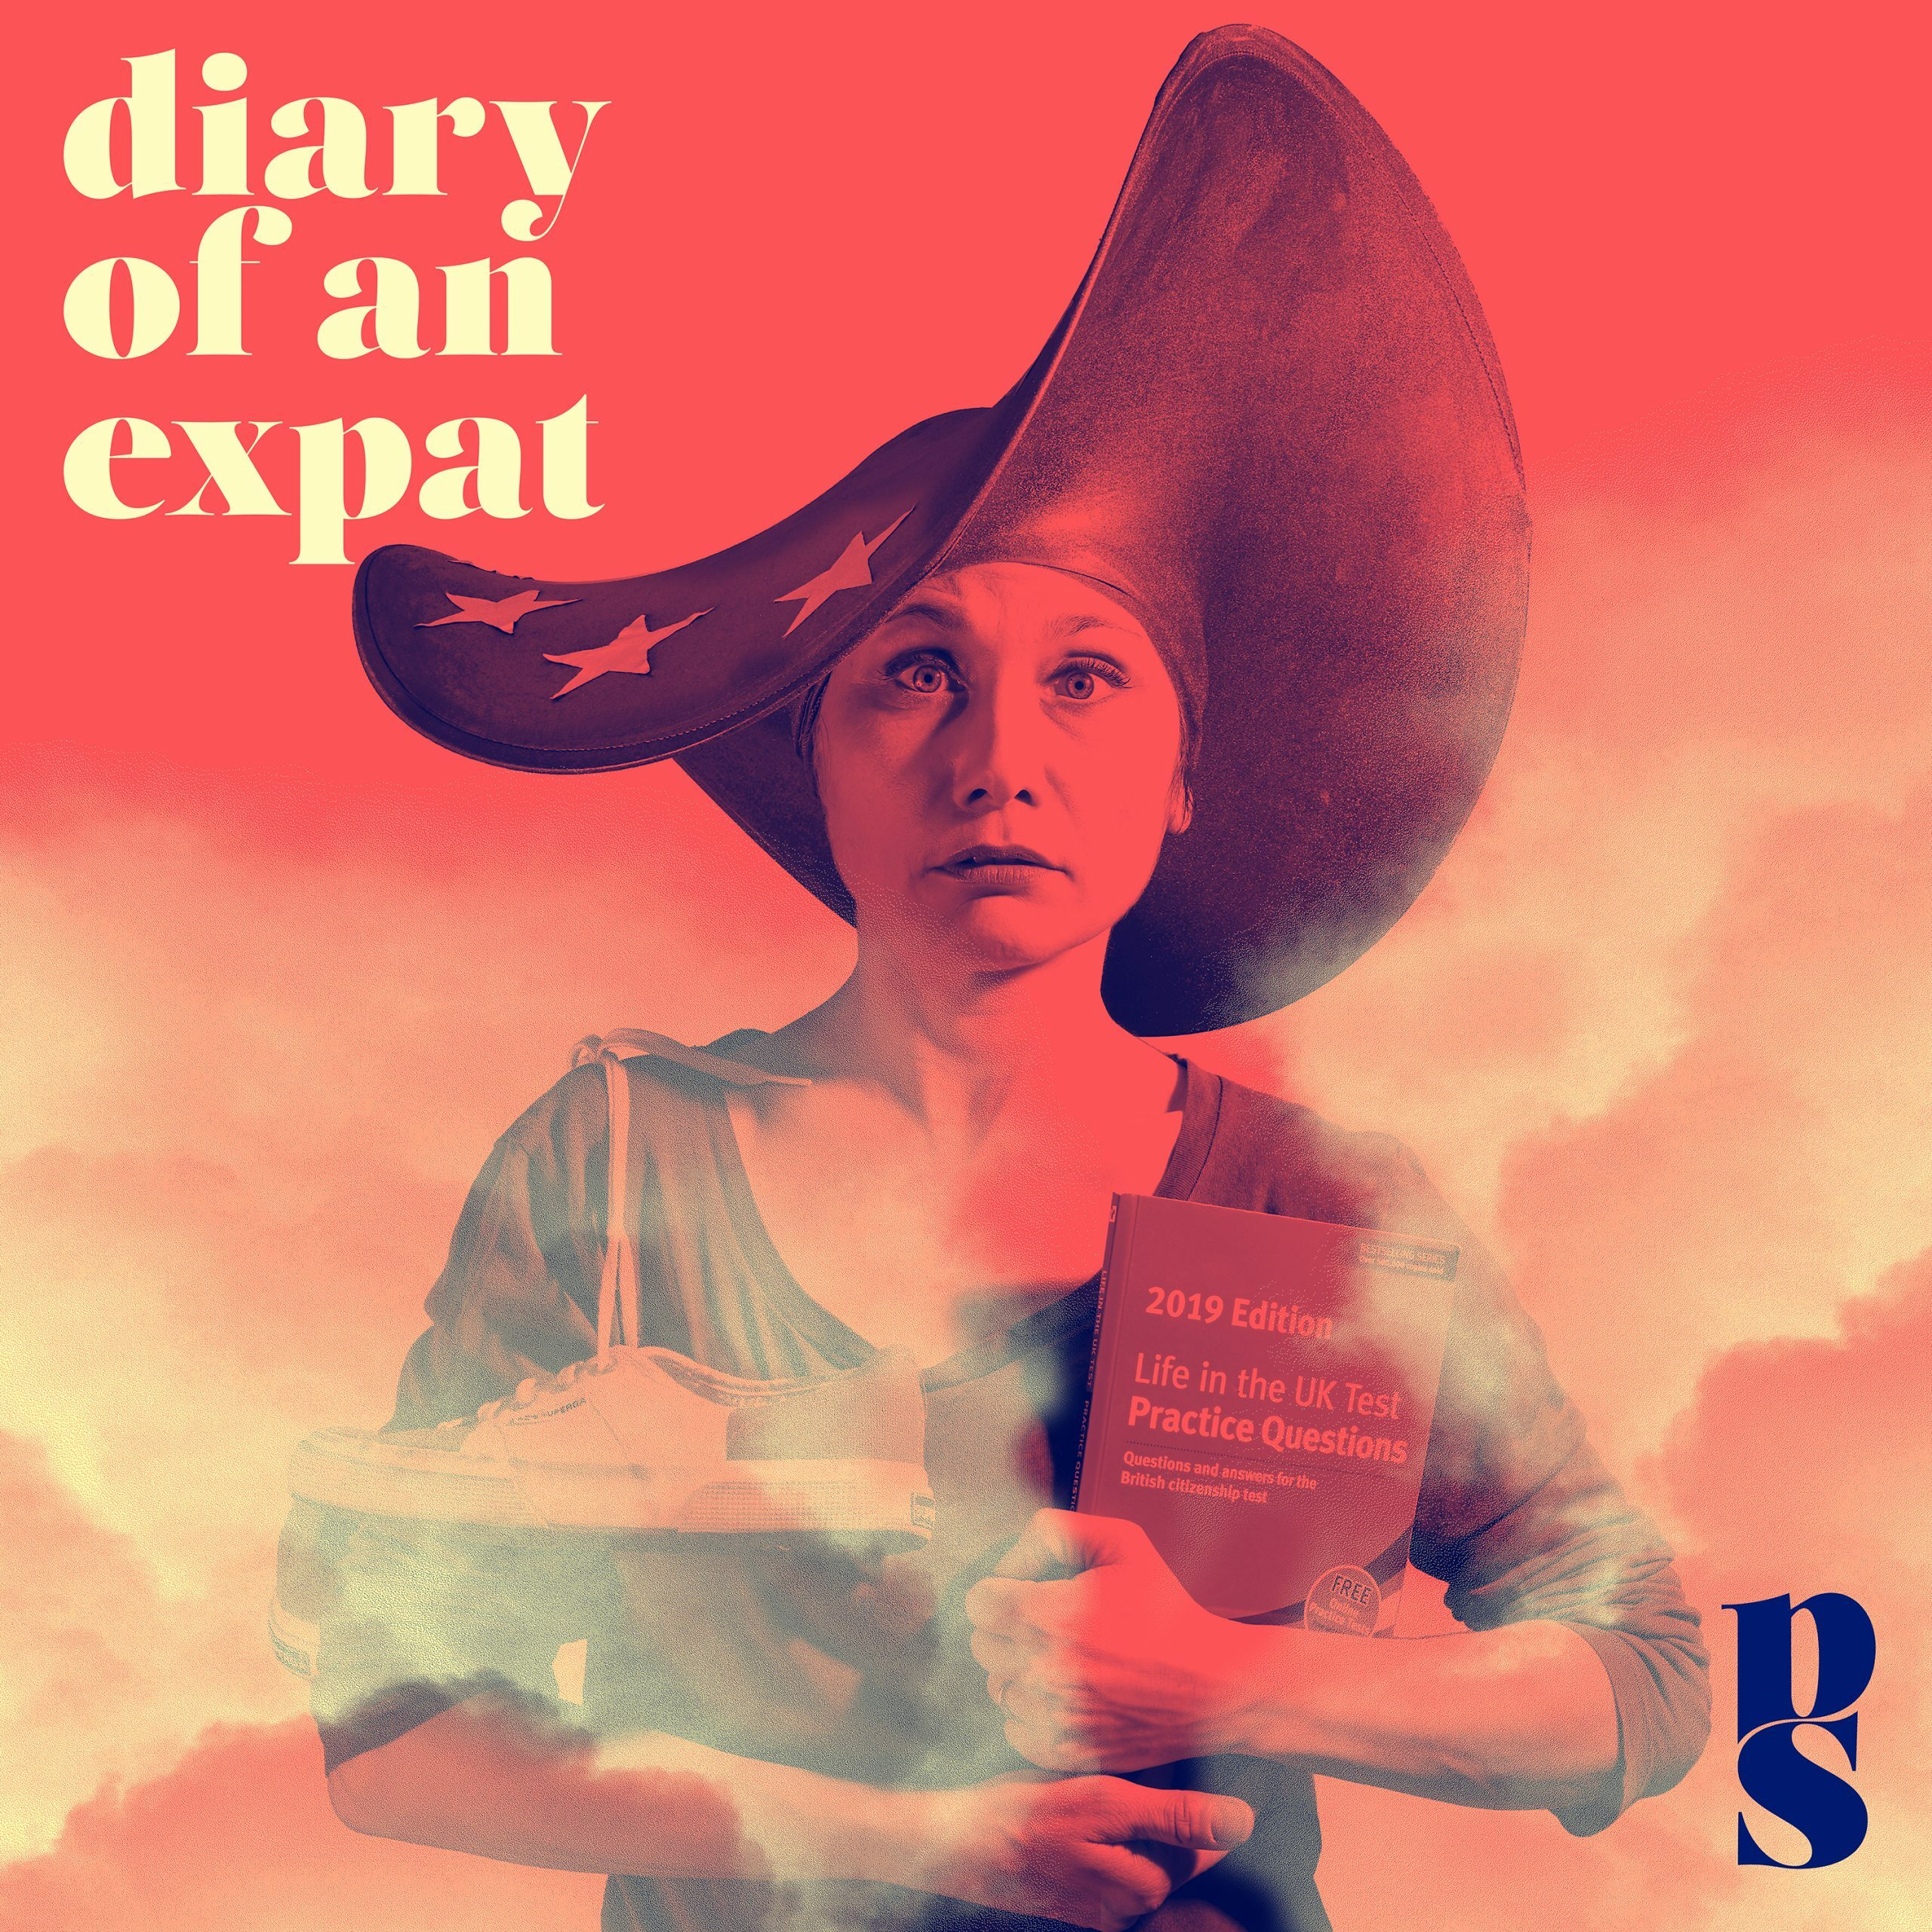 Diary of an Expat